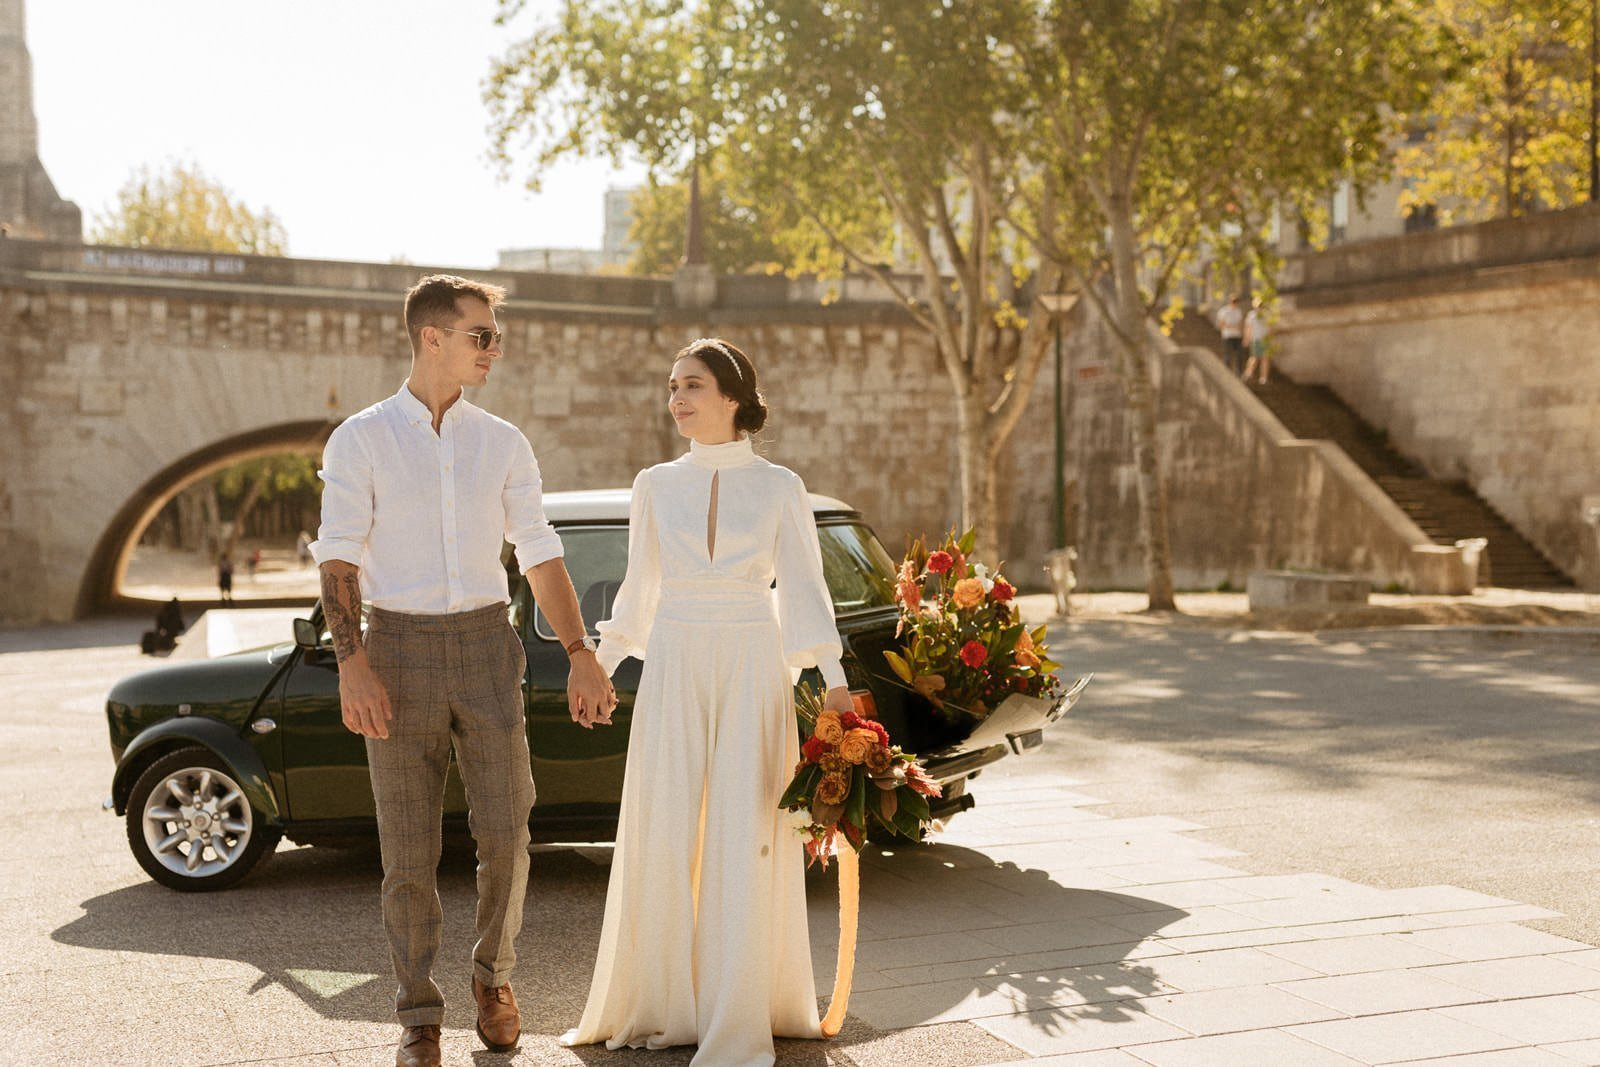 elopement style for paris wedding day